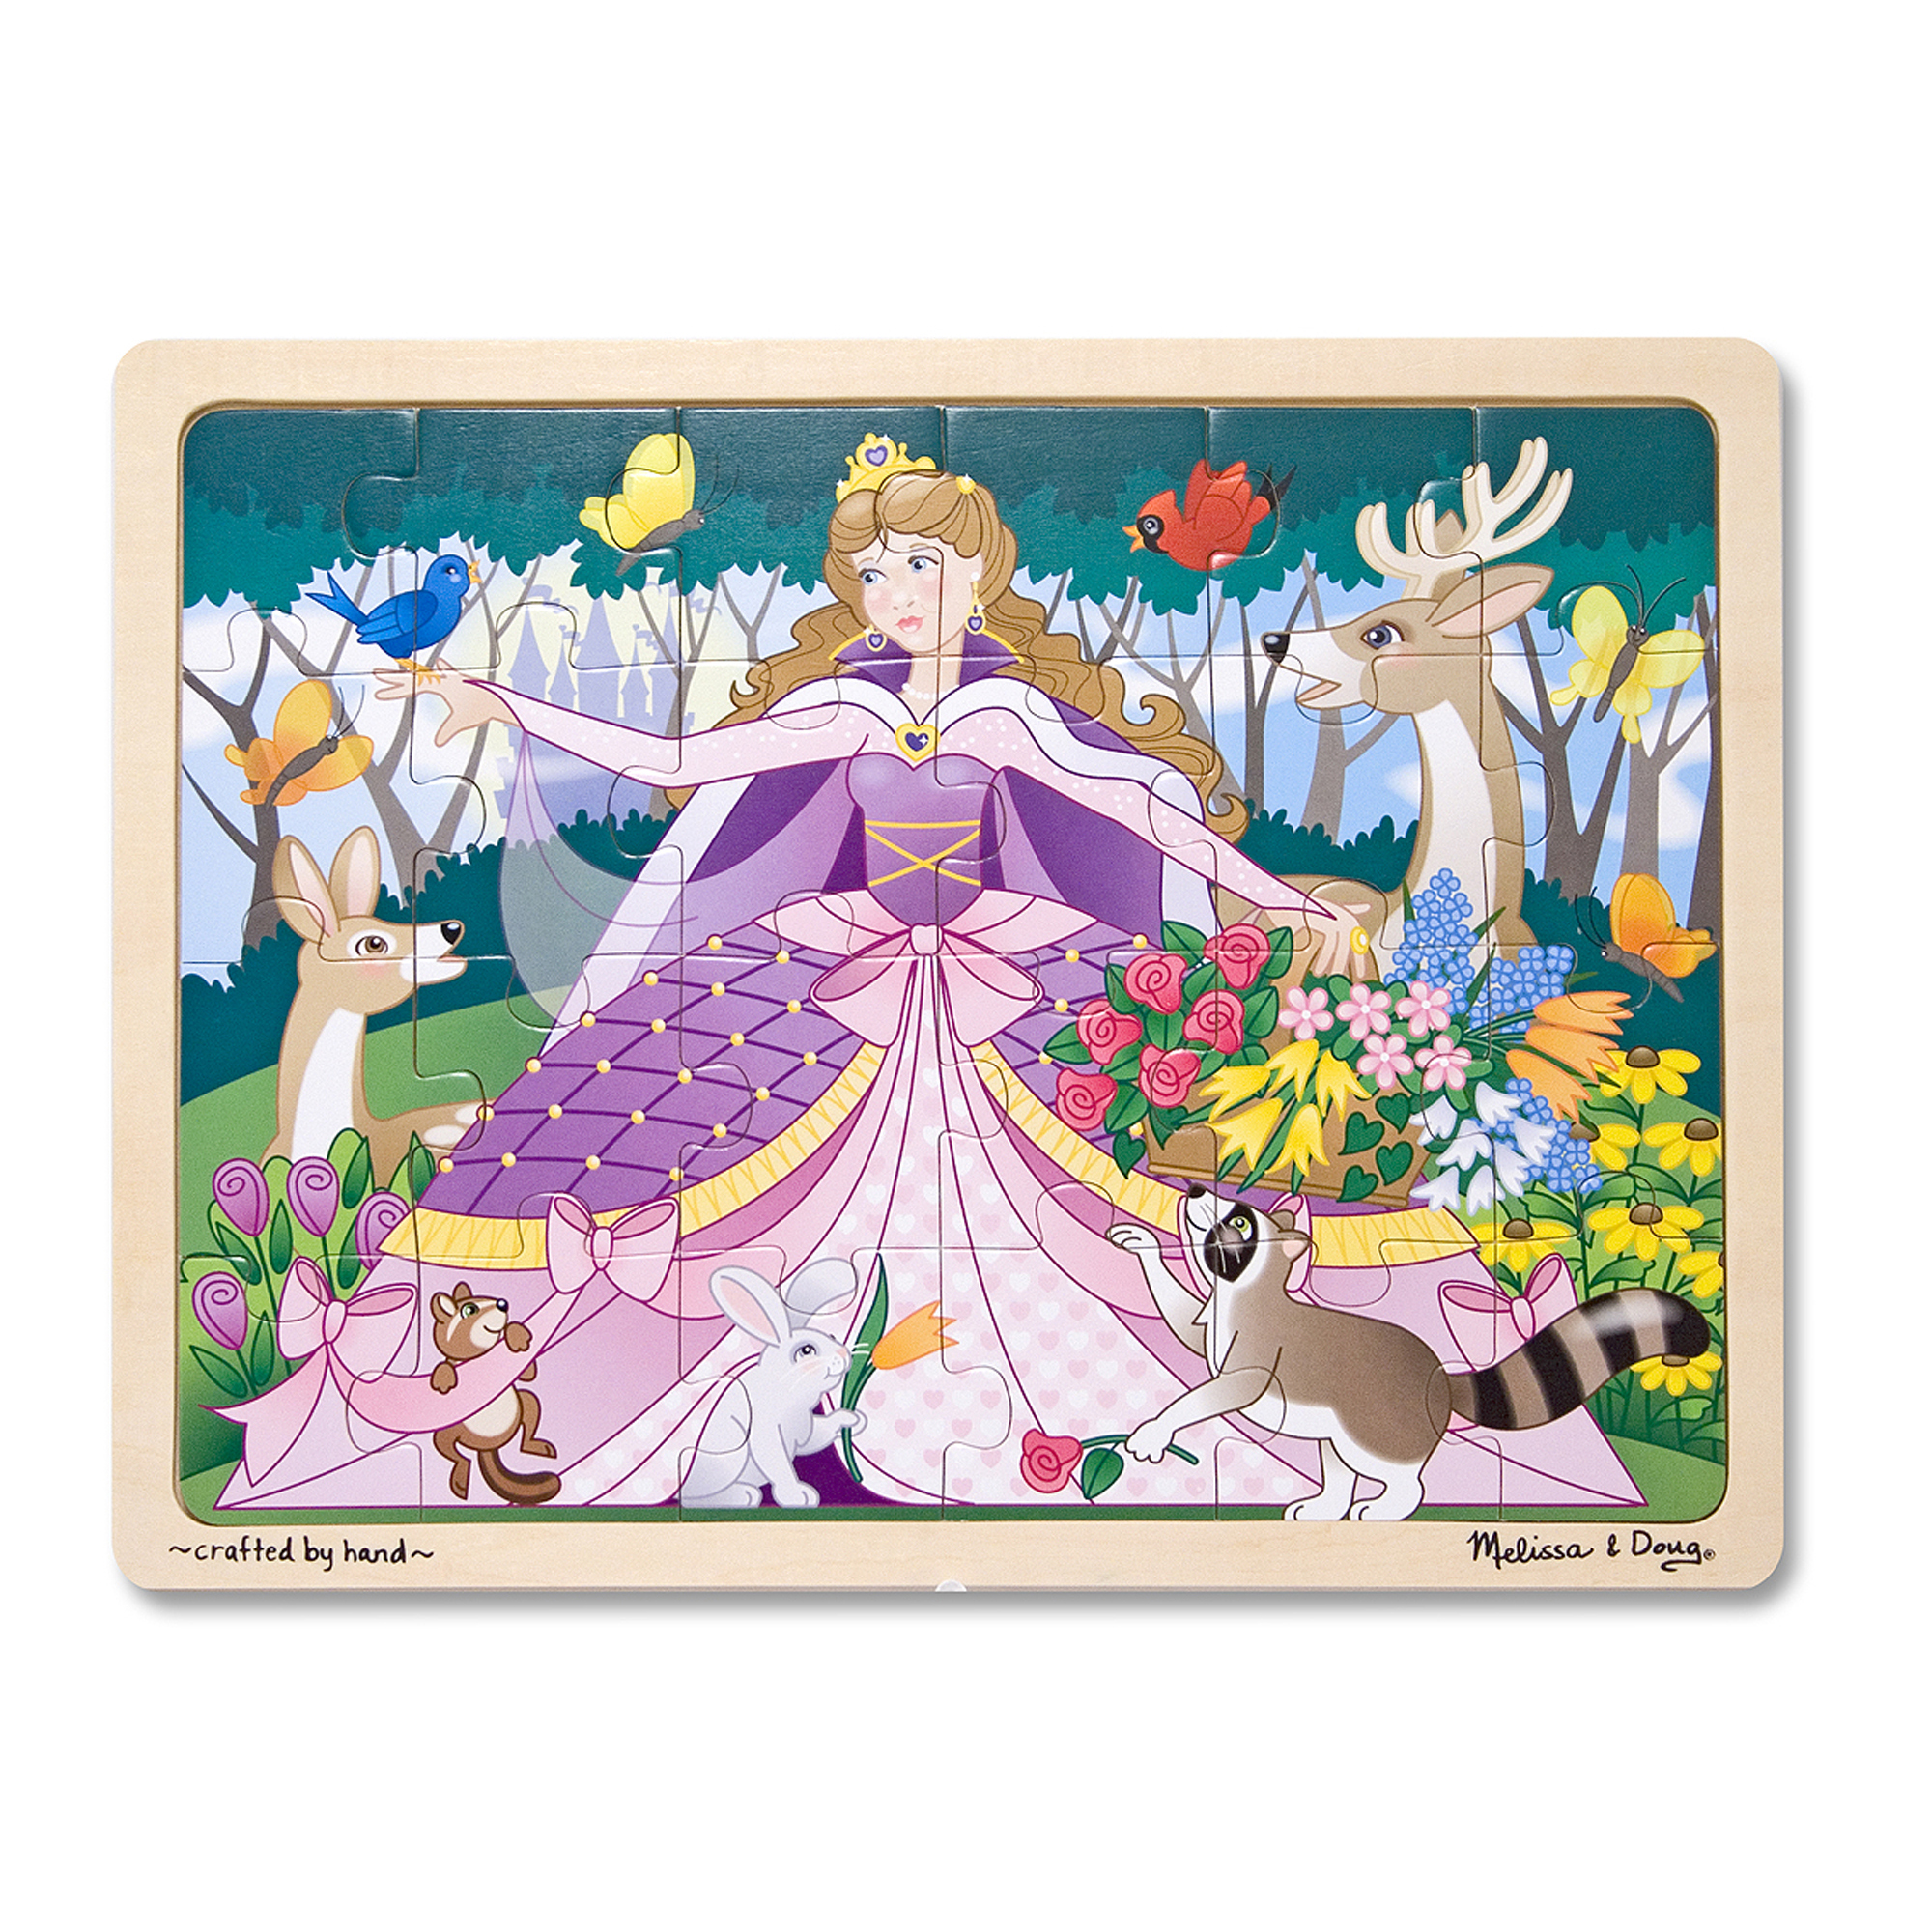 Woodland Princess Wooden Jigsaw Puzzle  24 Pieces